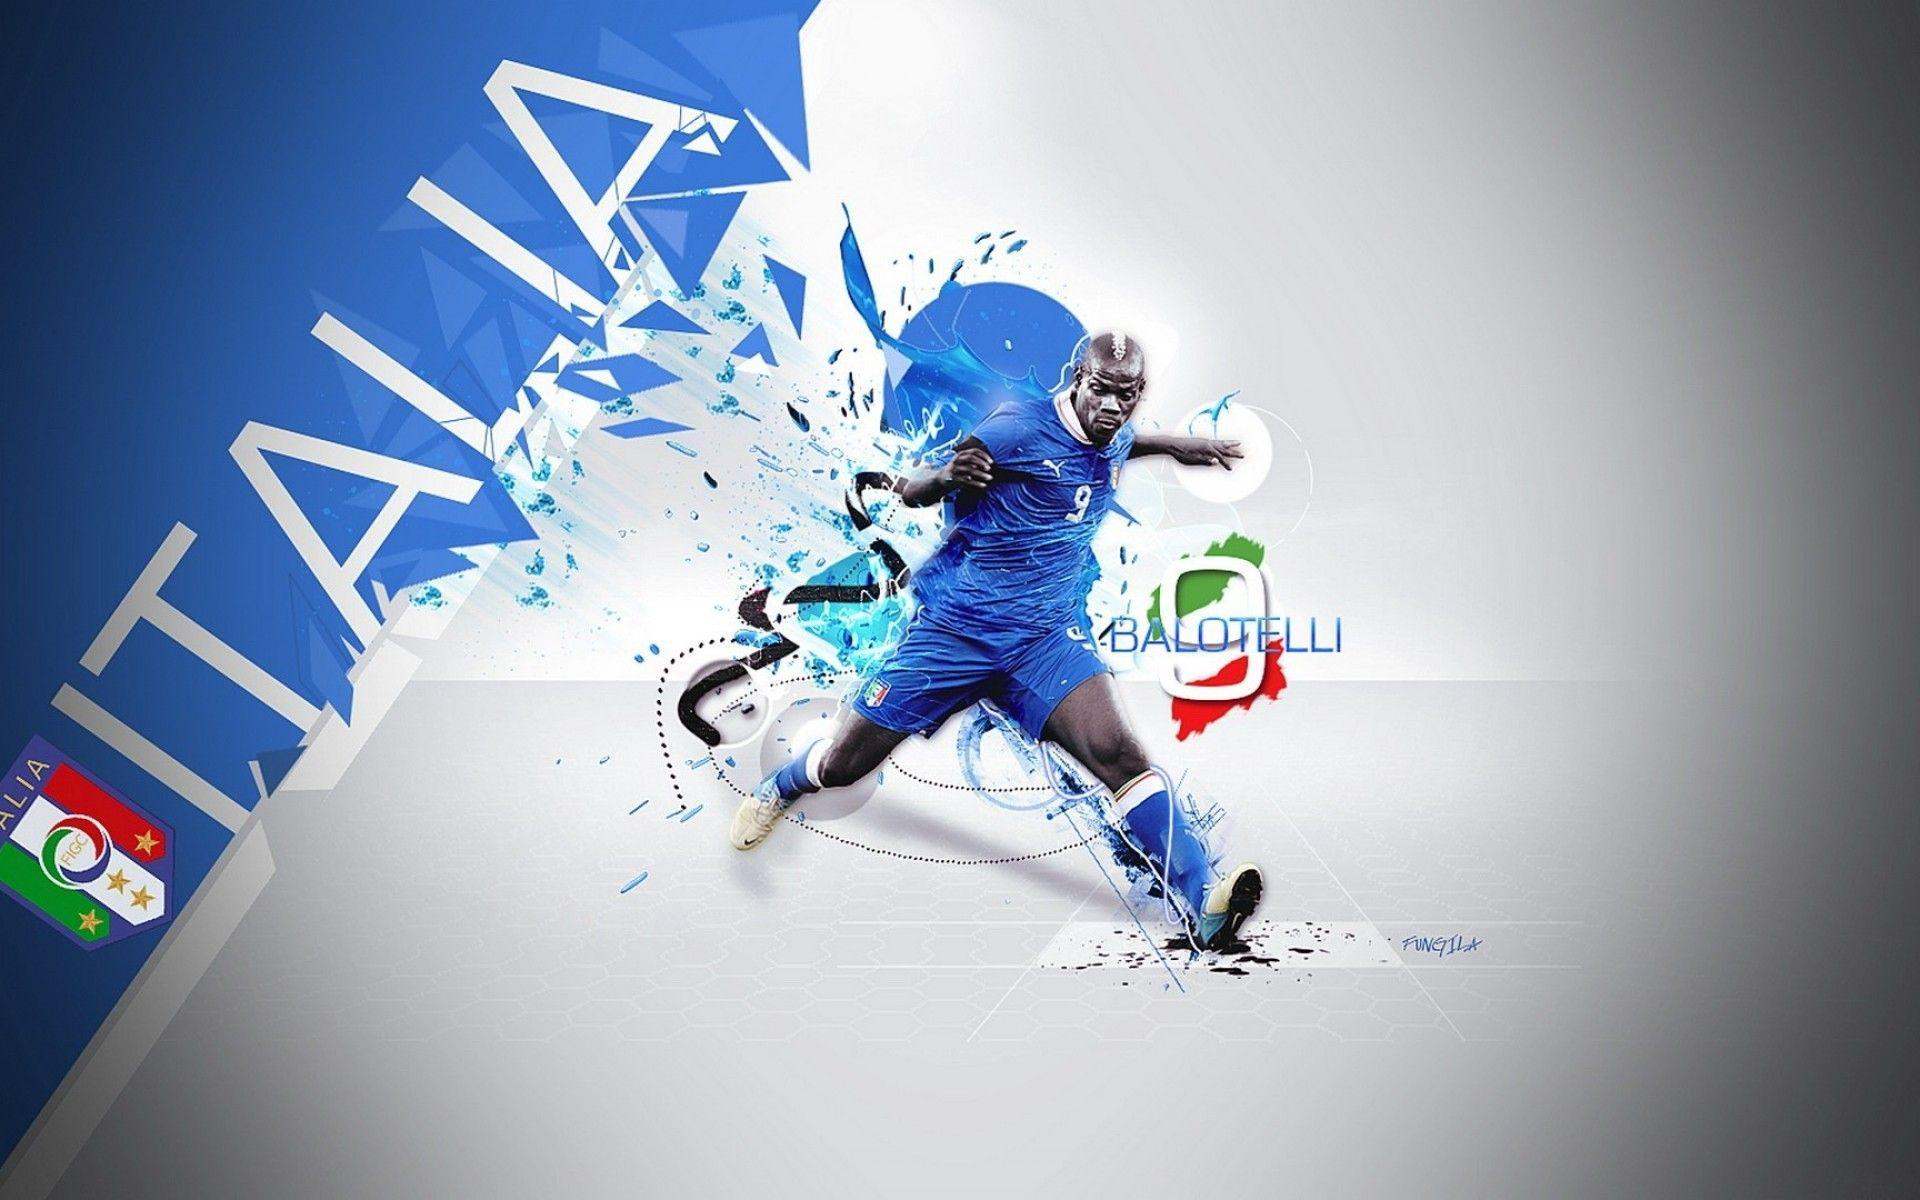 Mario Balloteli Balotelli Calcio My Hd 1920x1200